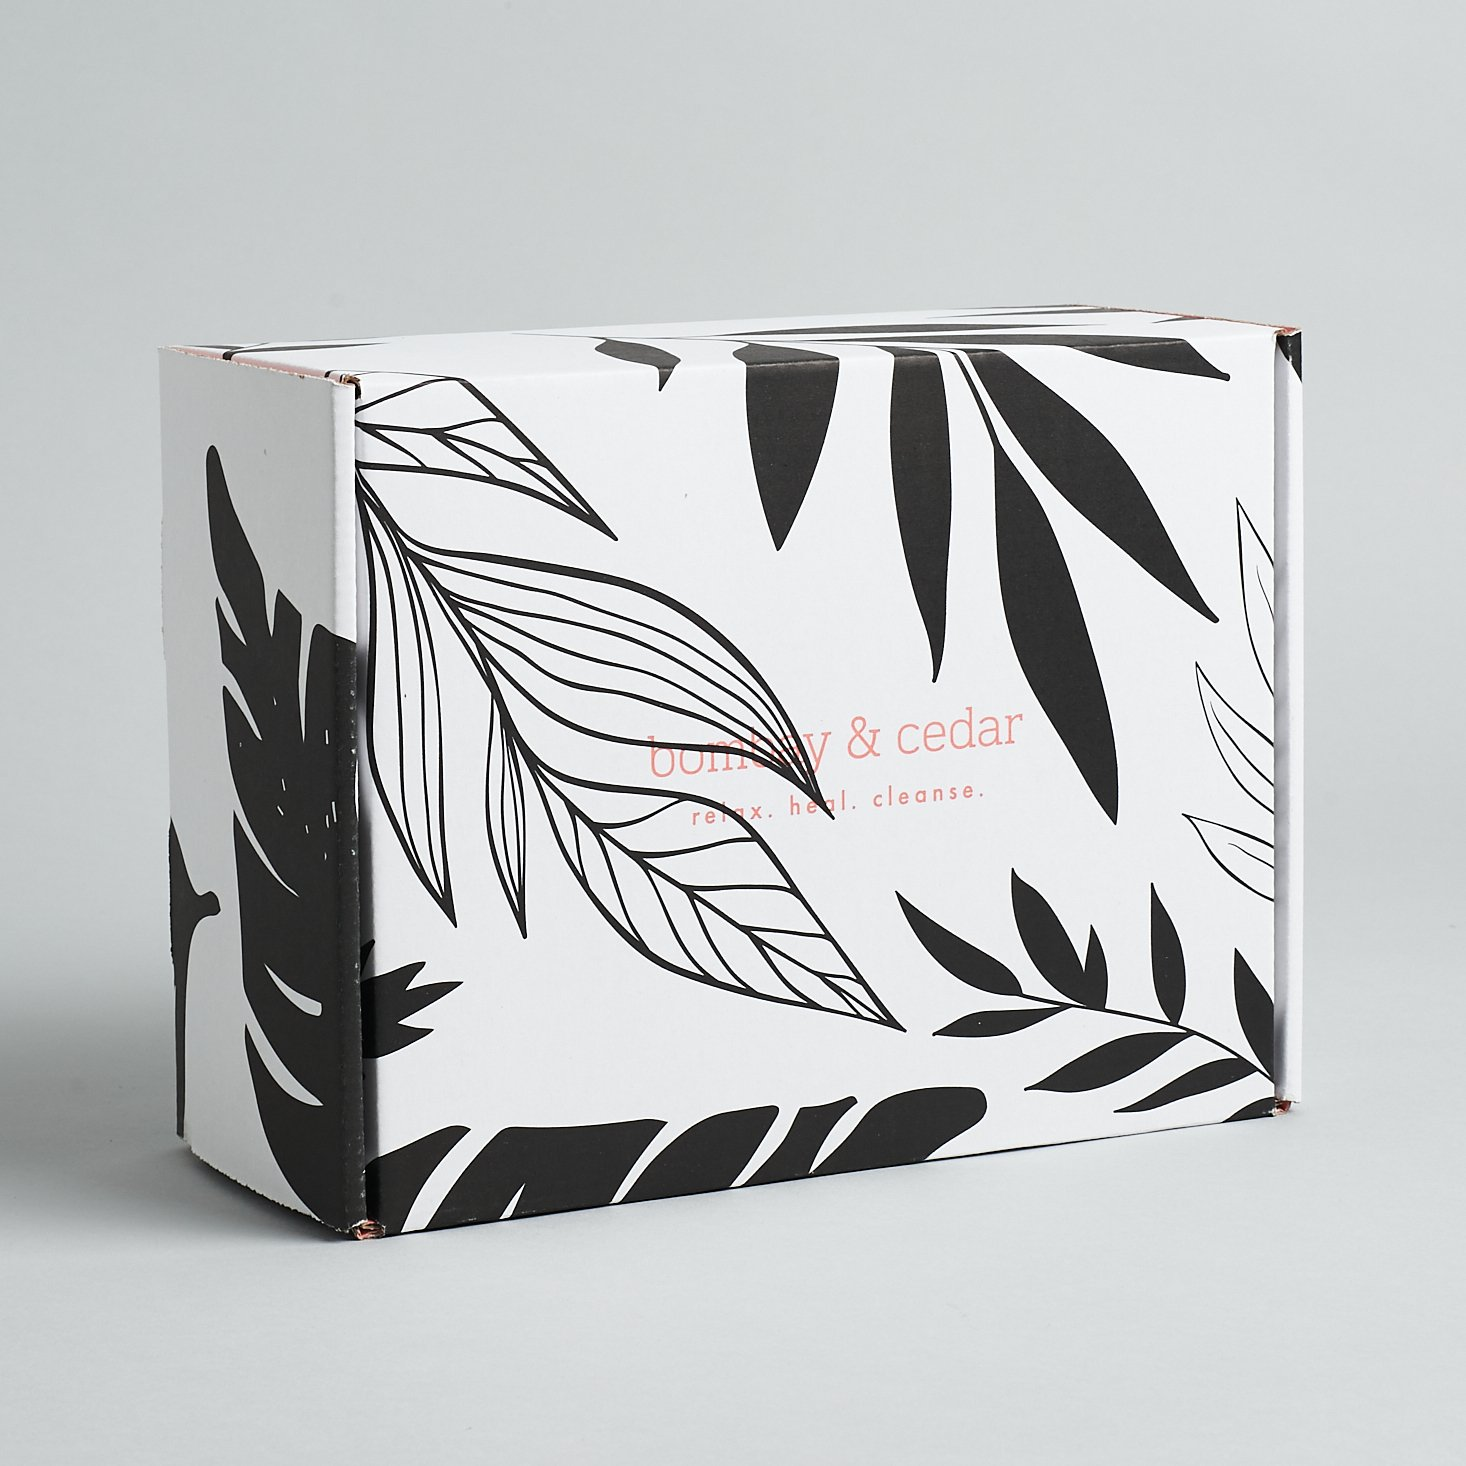 Bombay & Cedar Lifestyle Box Review + Coupon – July 2020